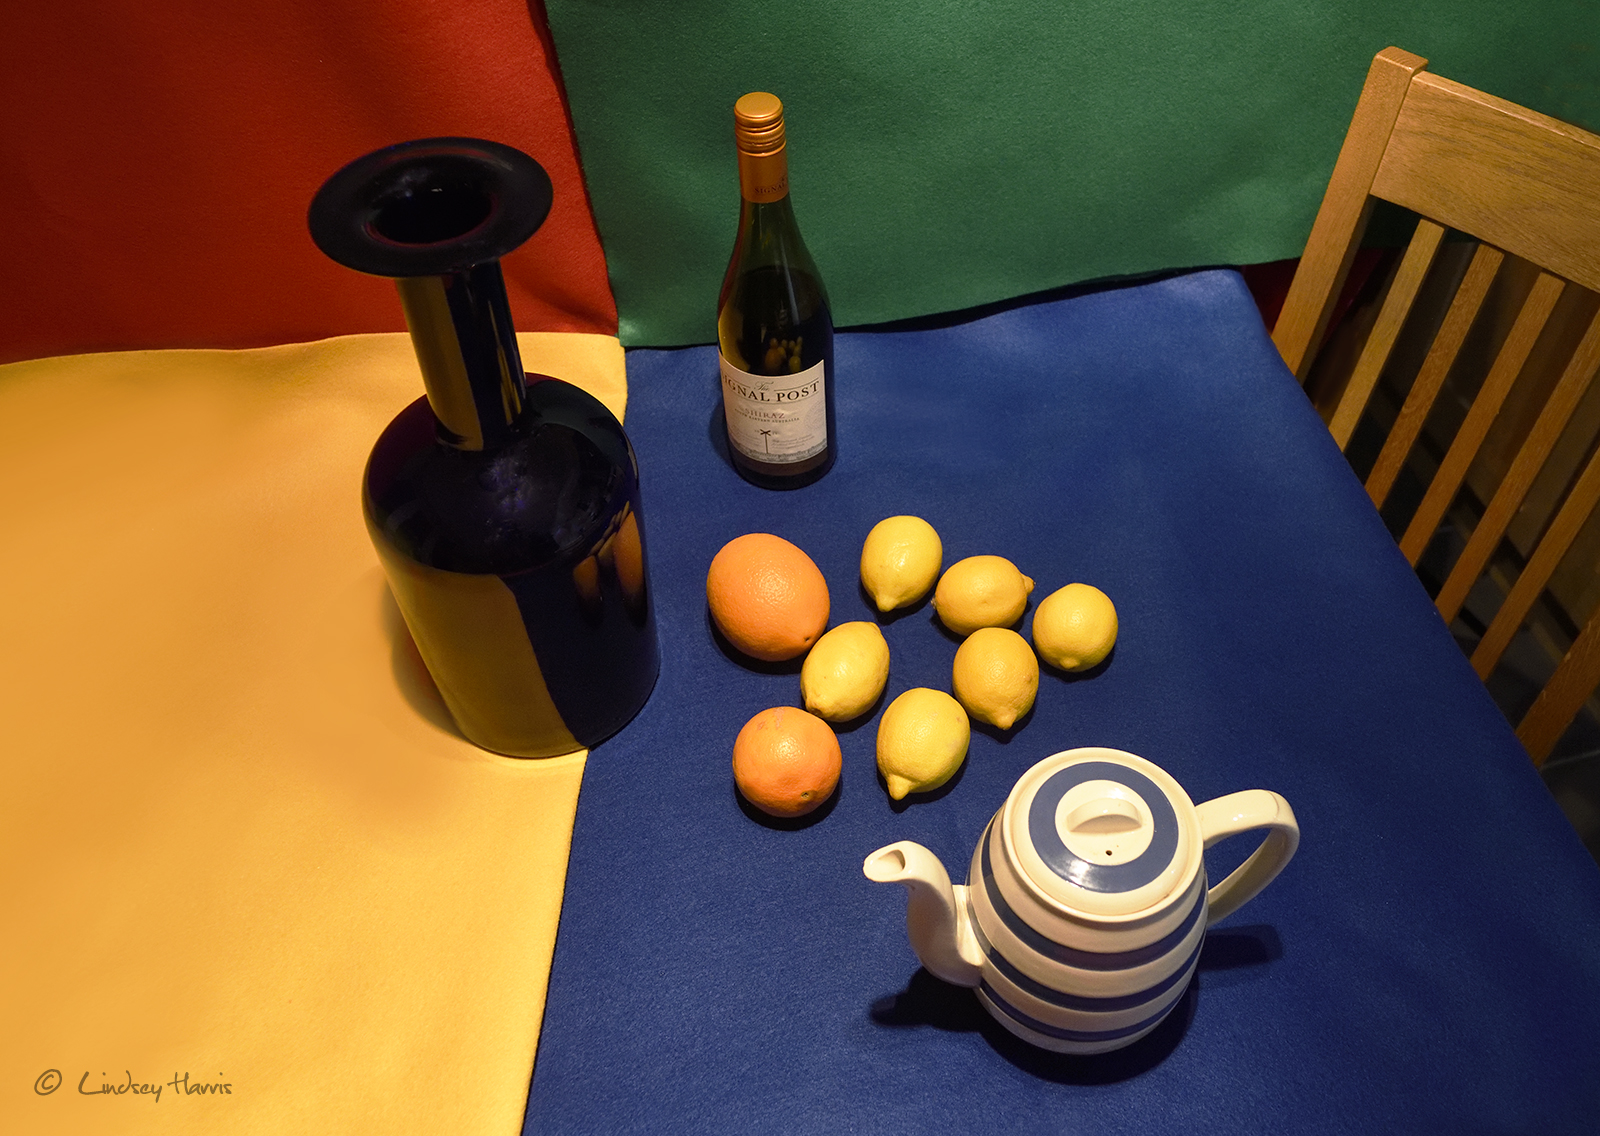 Matisse & Dufy Style Still Life Photography Class – 17th March 2018